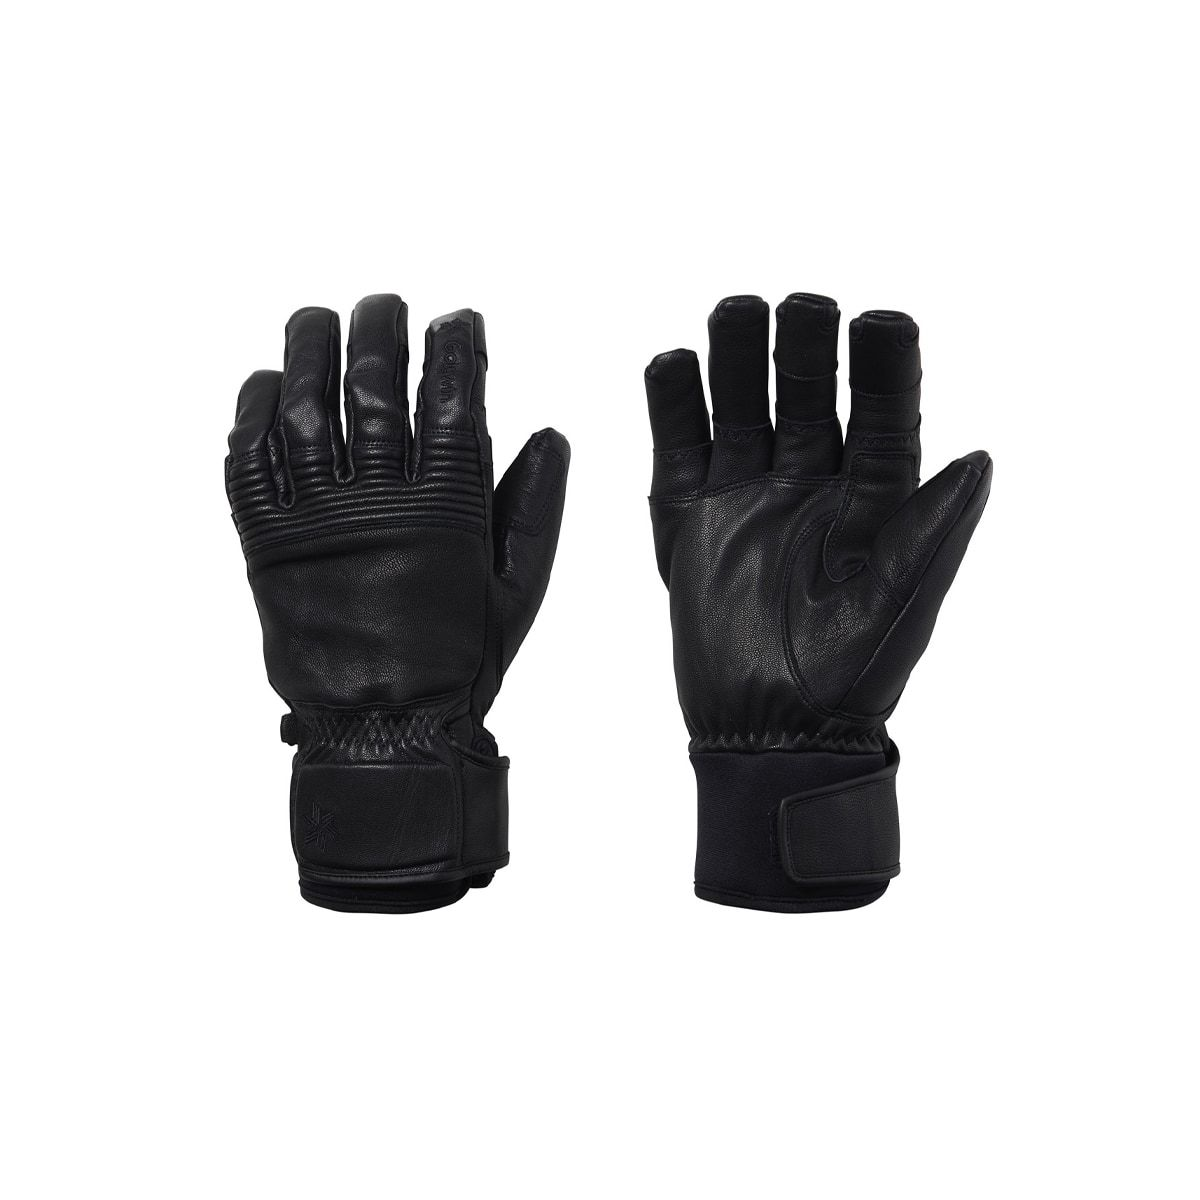 LEATHER FORMFITTING GLOVE